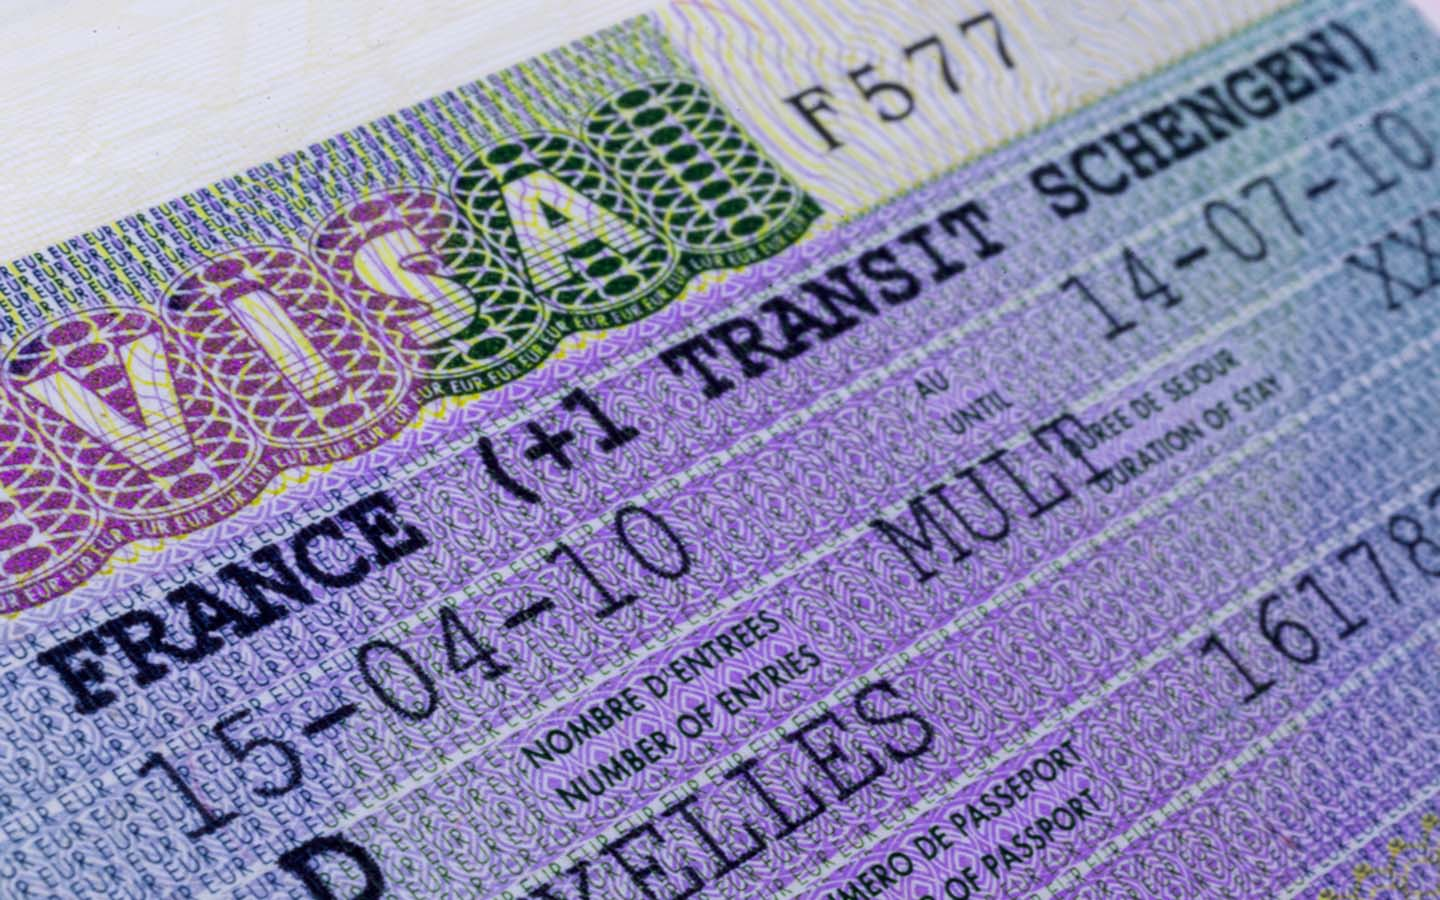 How to apply for a Schengen visa from Dubai: Required